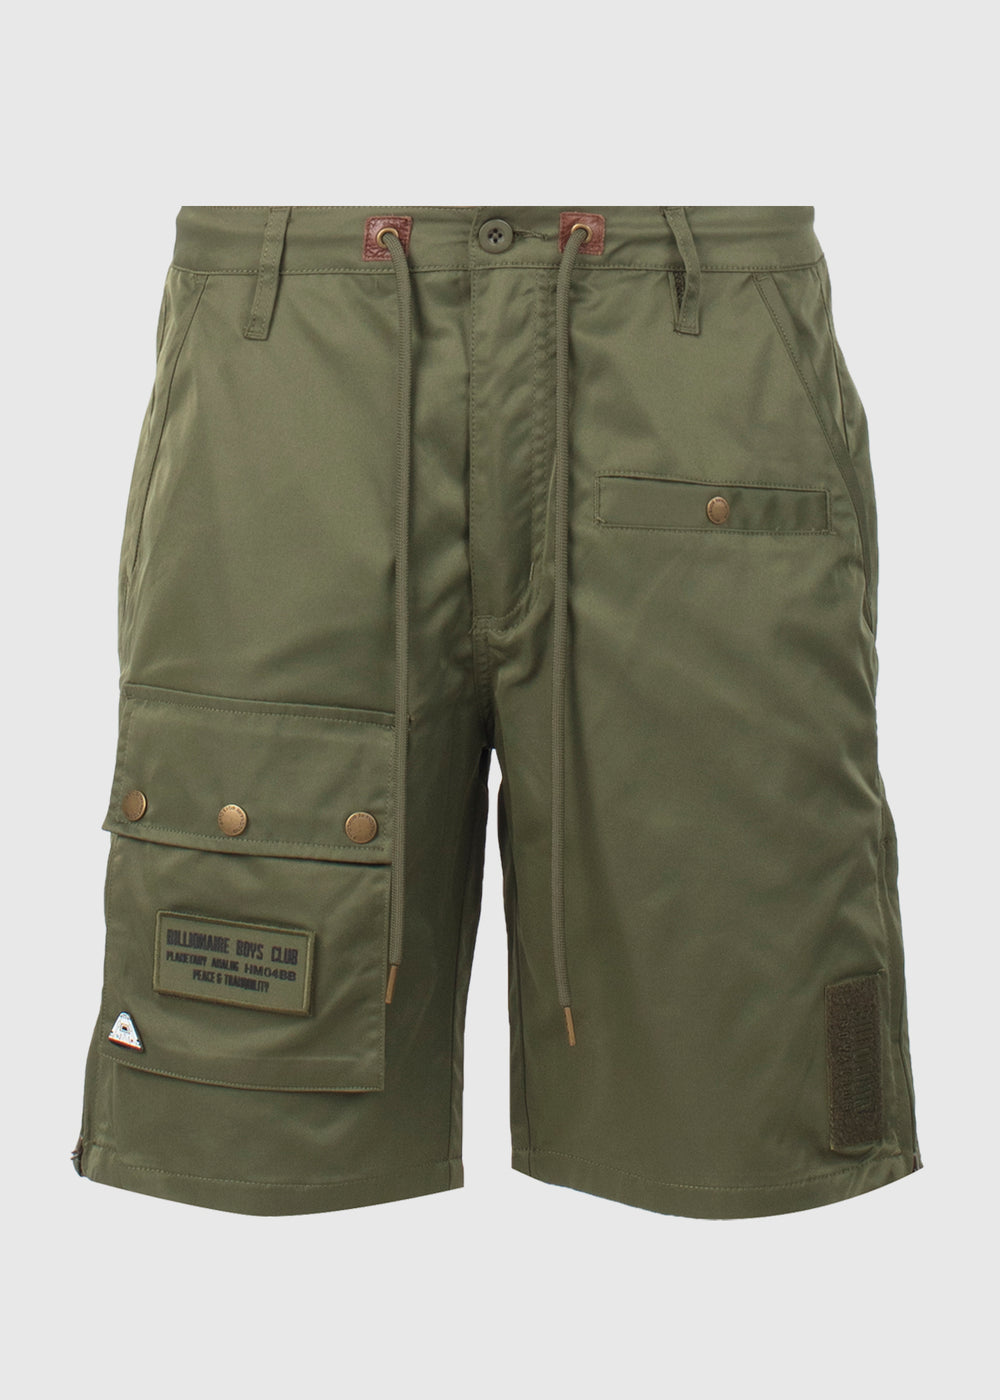 billionaire-boys-club-aviator-shorts-891-6101-grn-grn-1